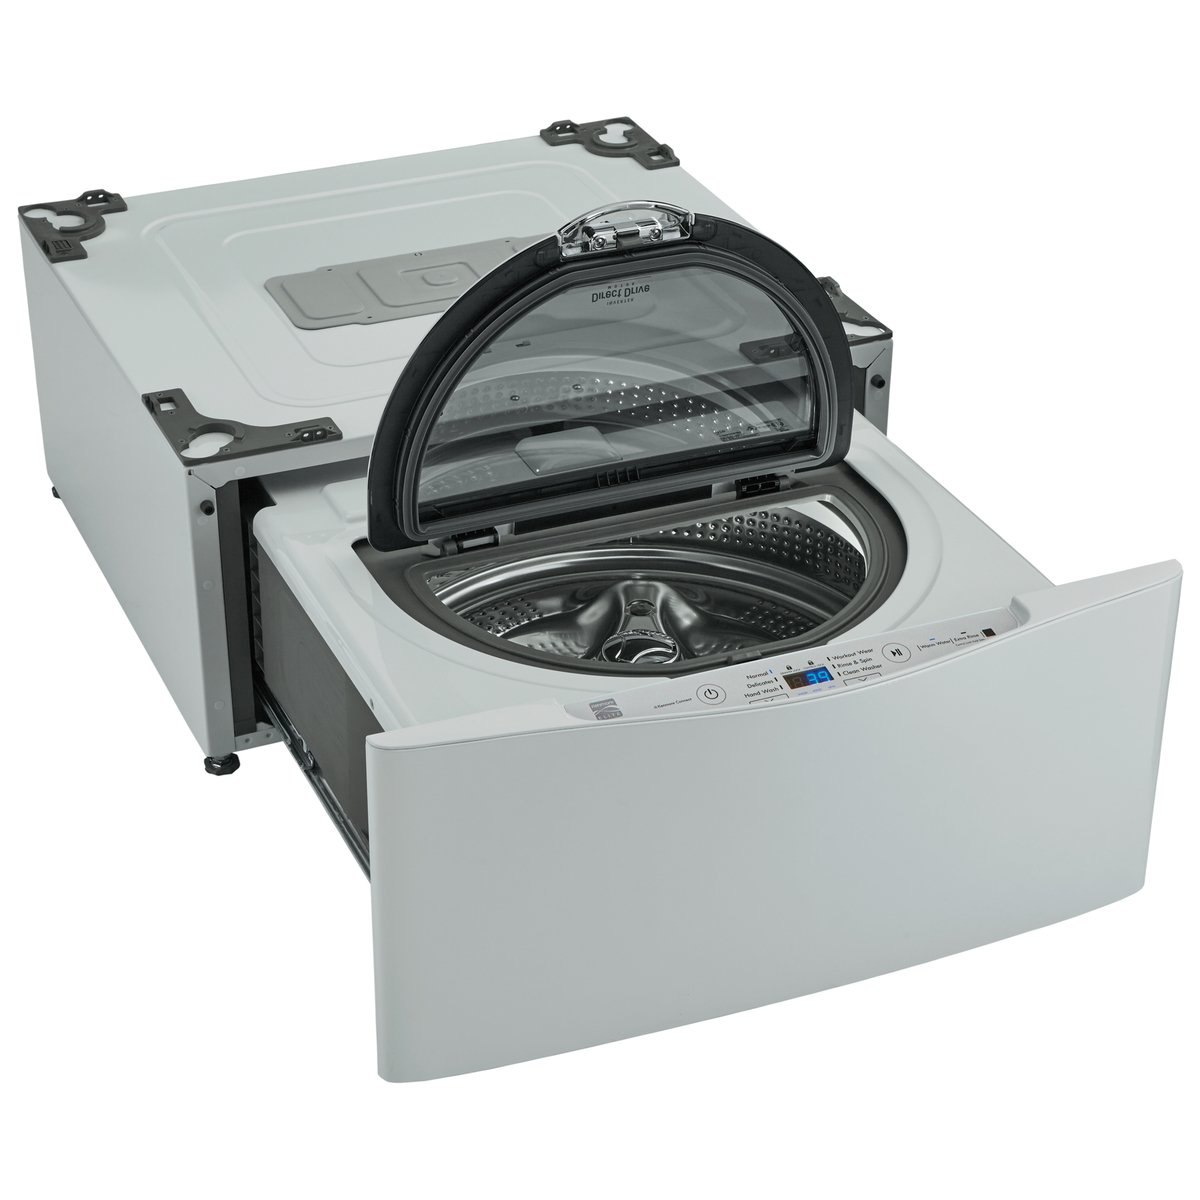 Kenmore Elite 51992 29'' Wide Pedestal Washer in White, includes delivery and hookup